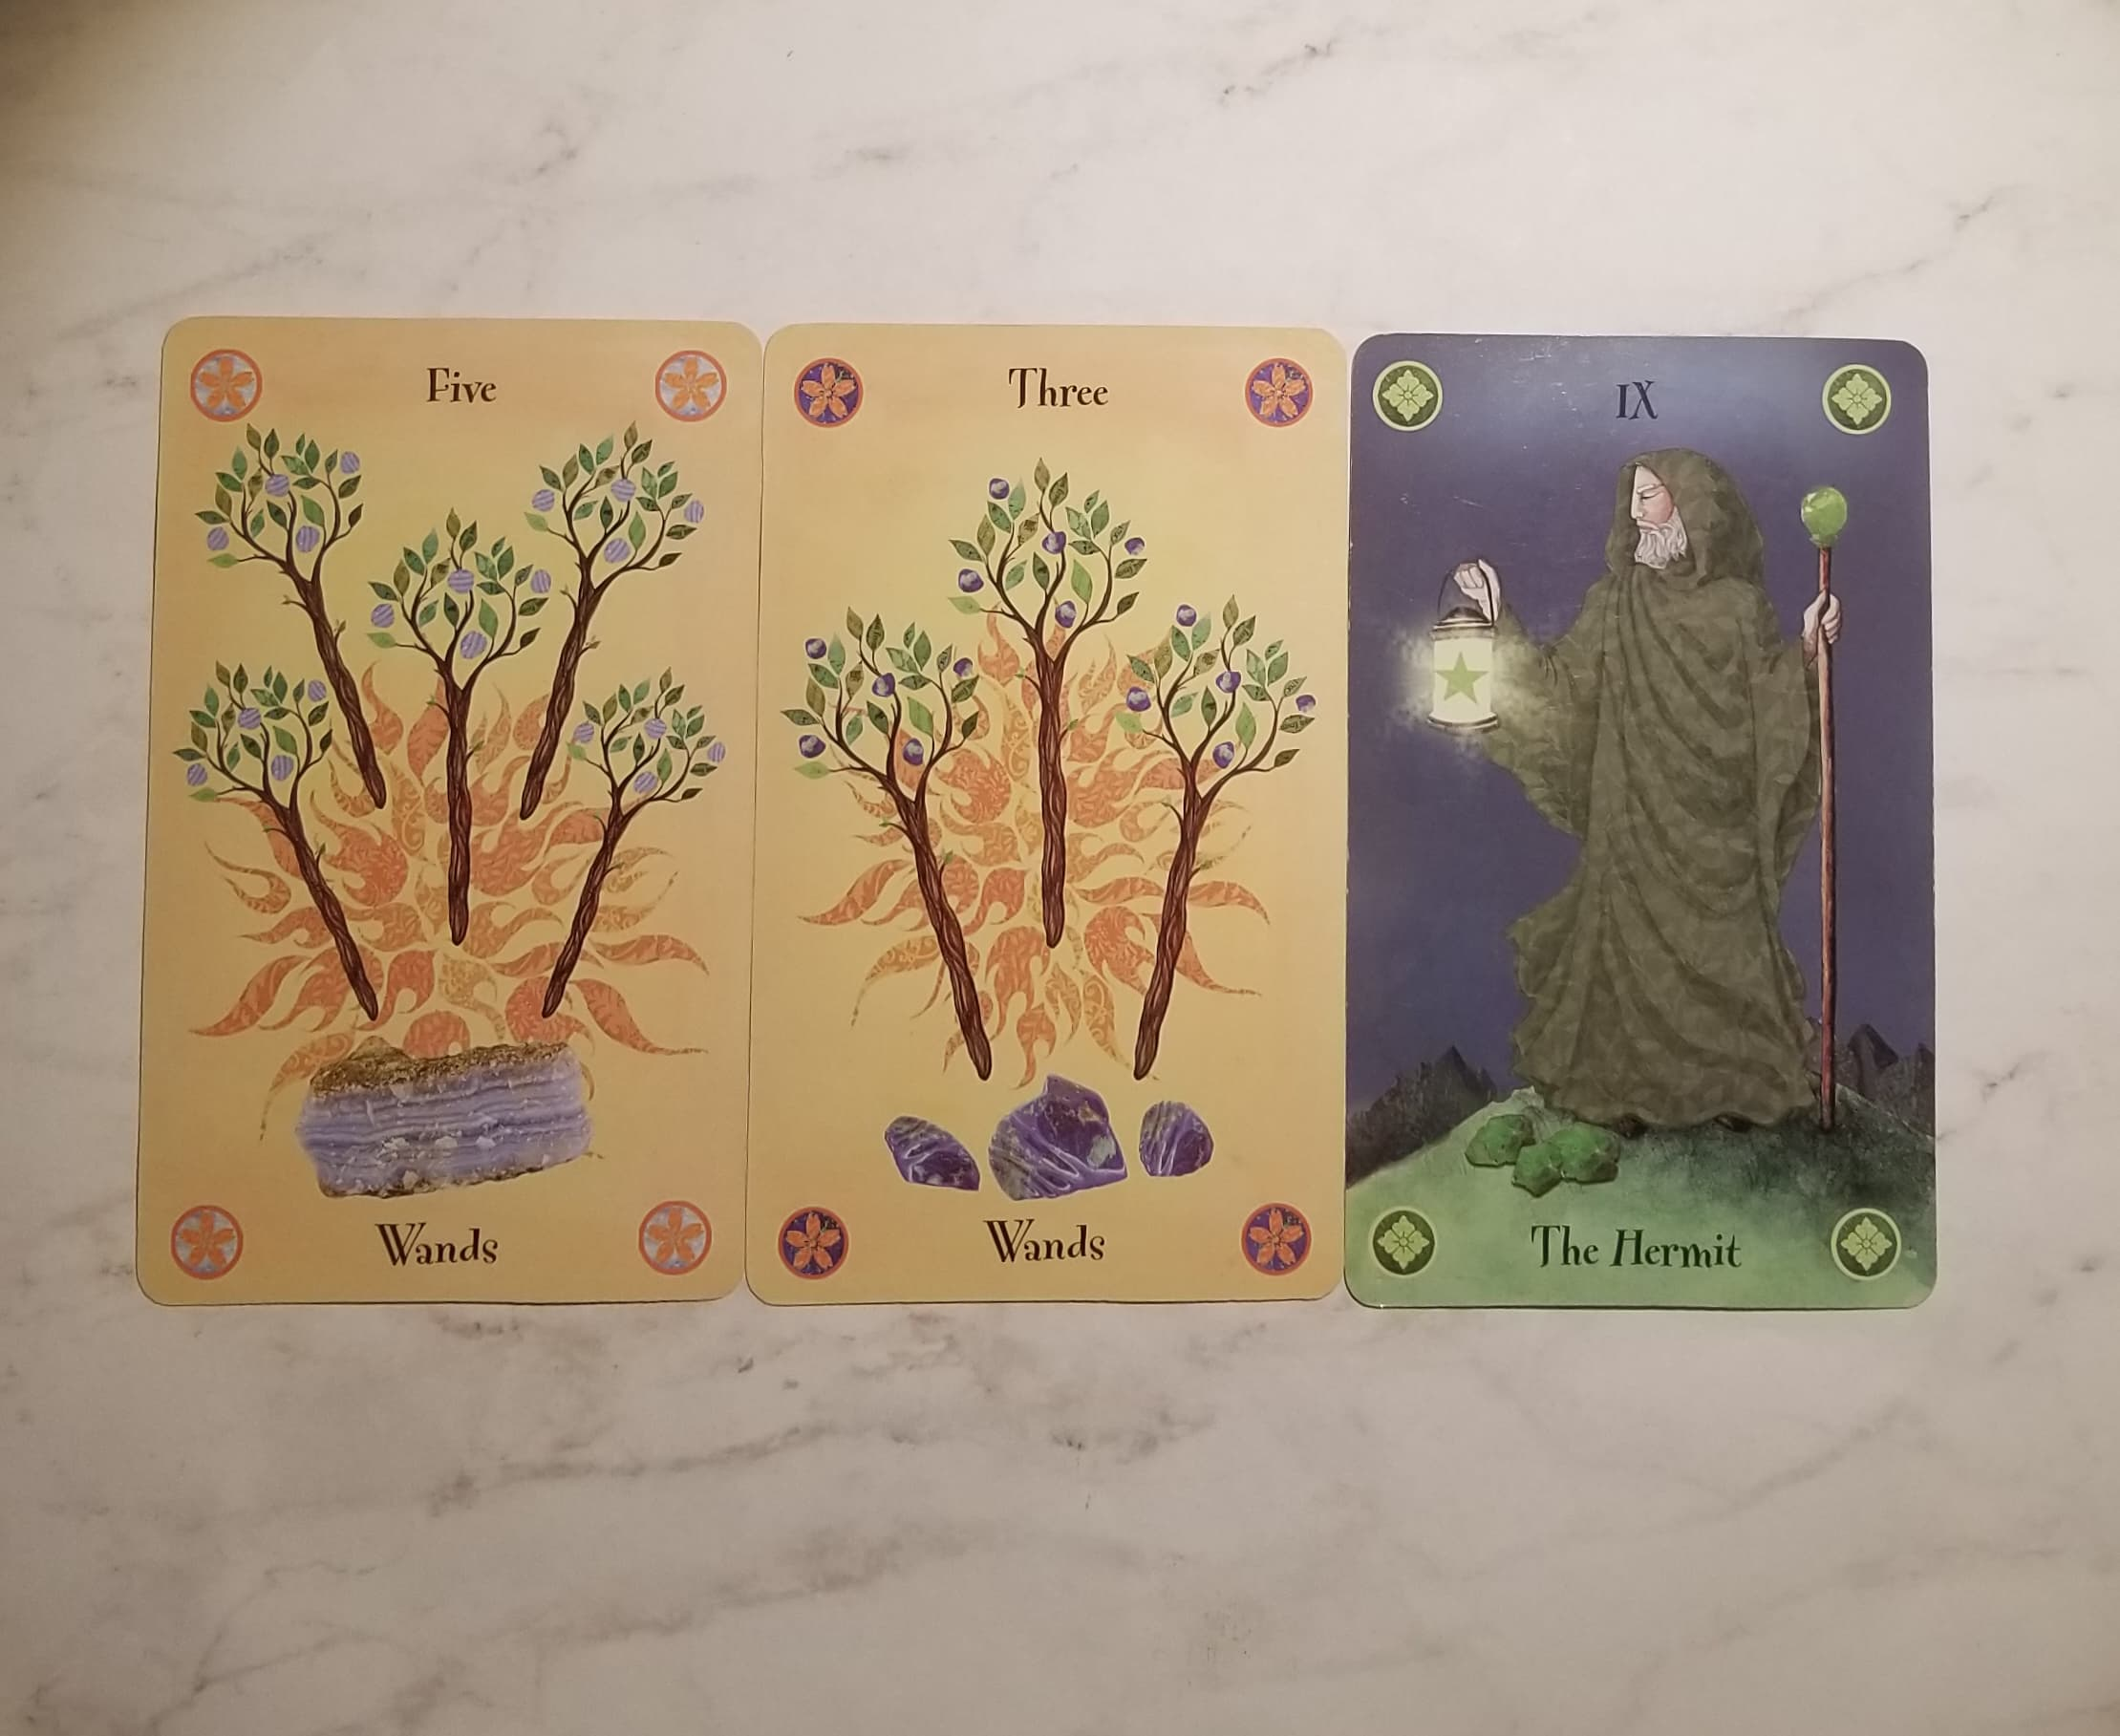 From Left to Right: Five of Wands, Three of Wands, The Hermit